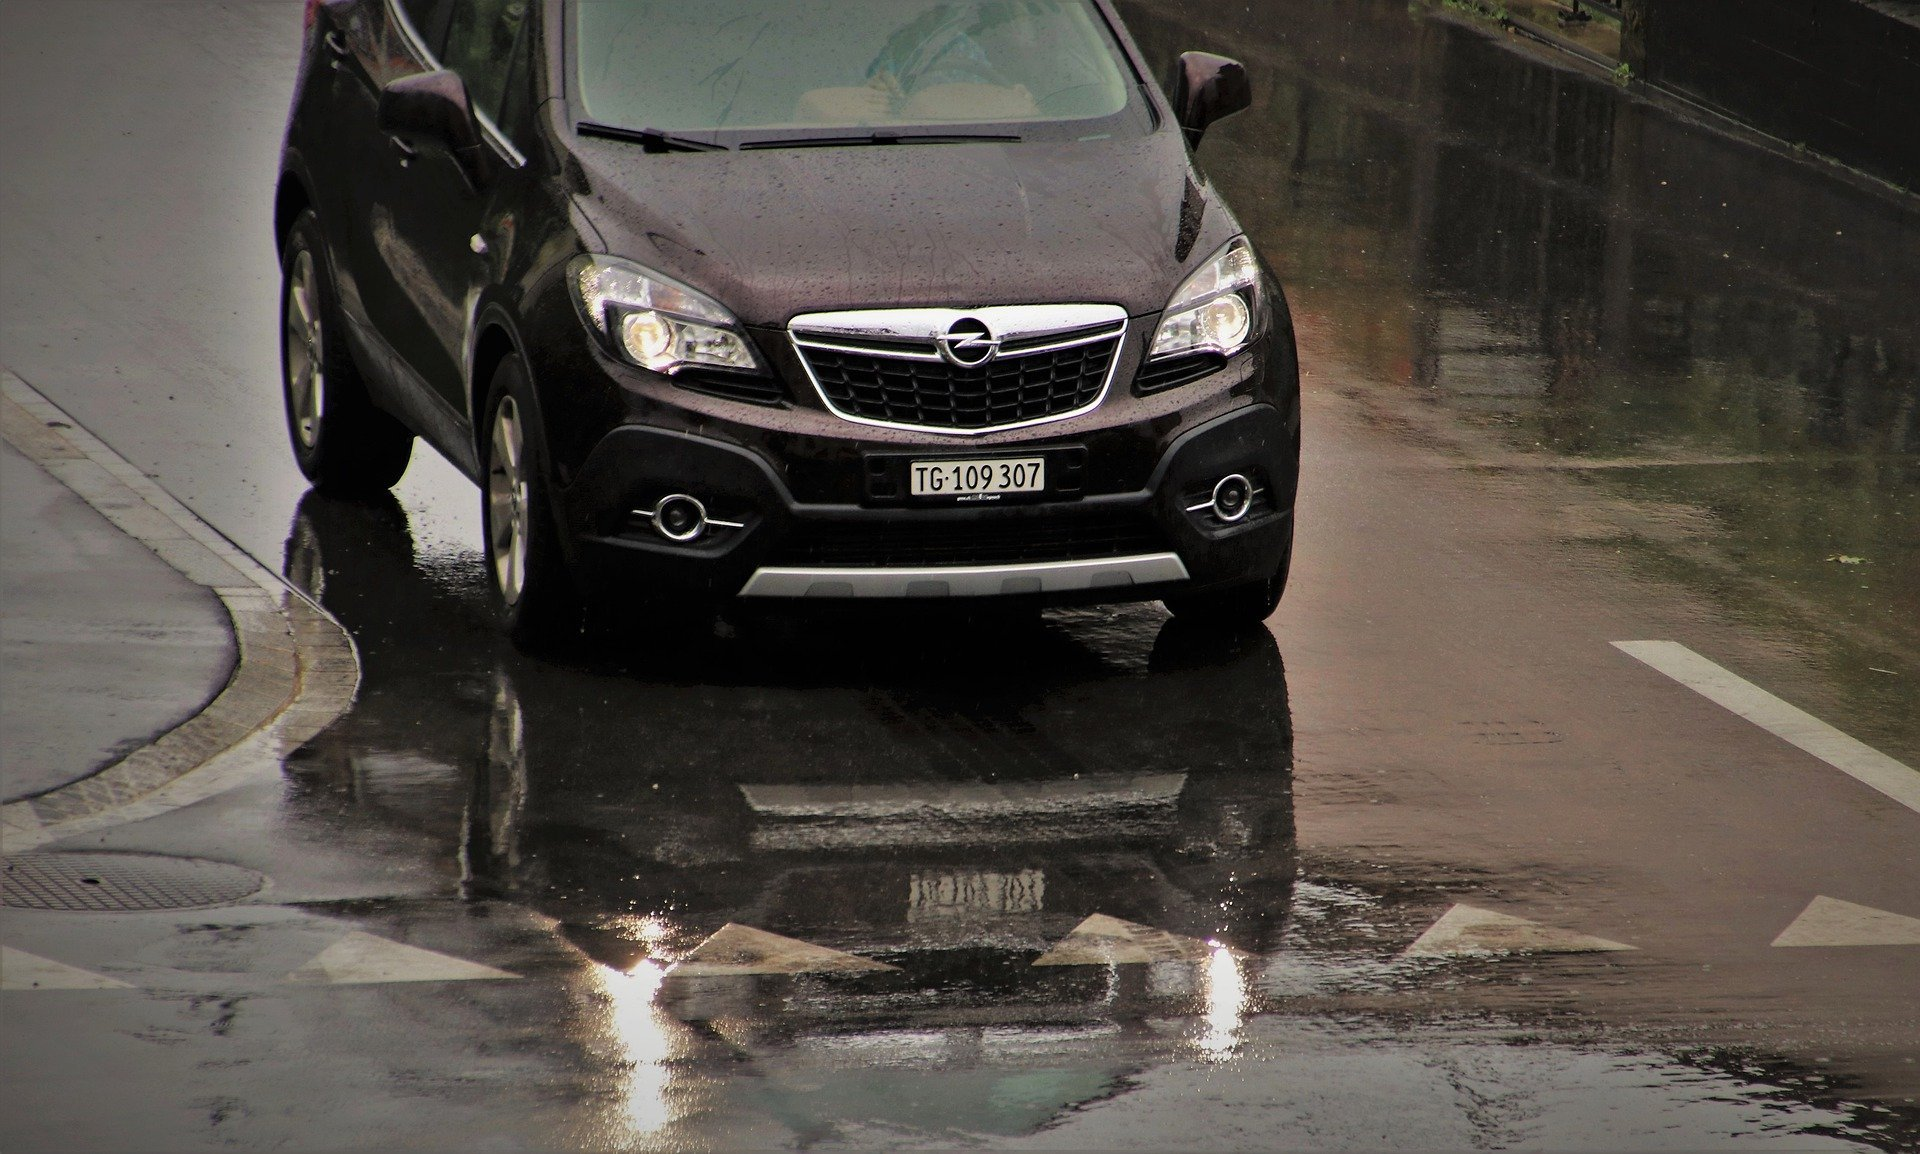 driving car in the wet road